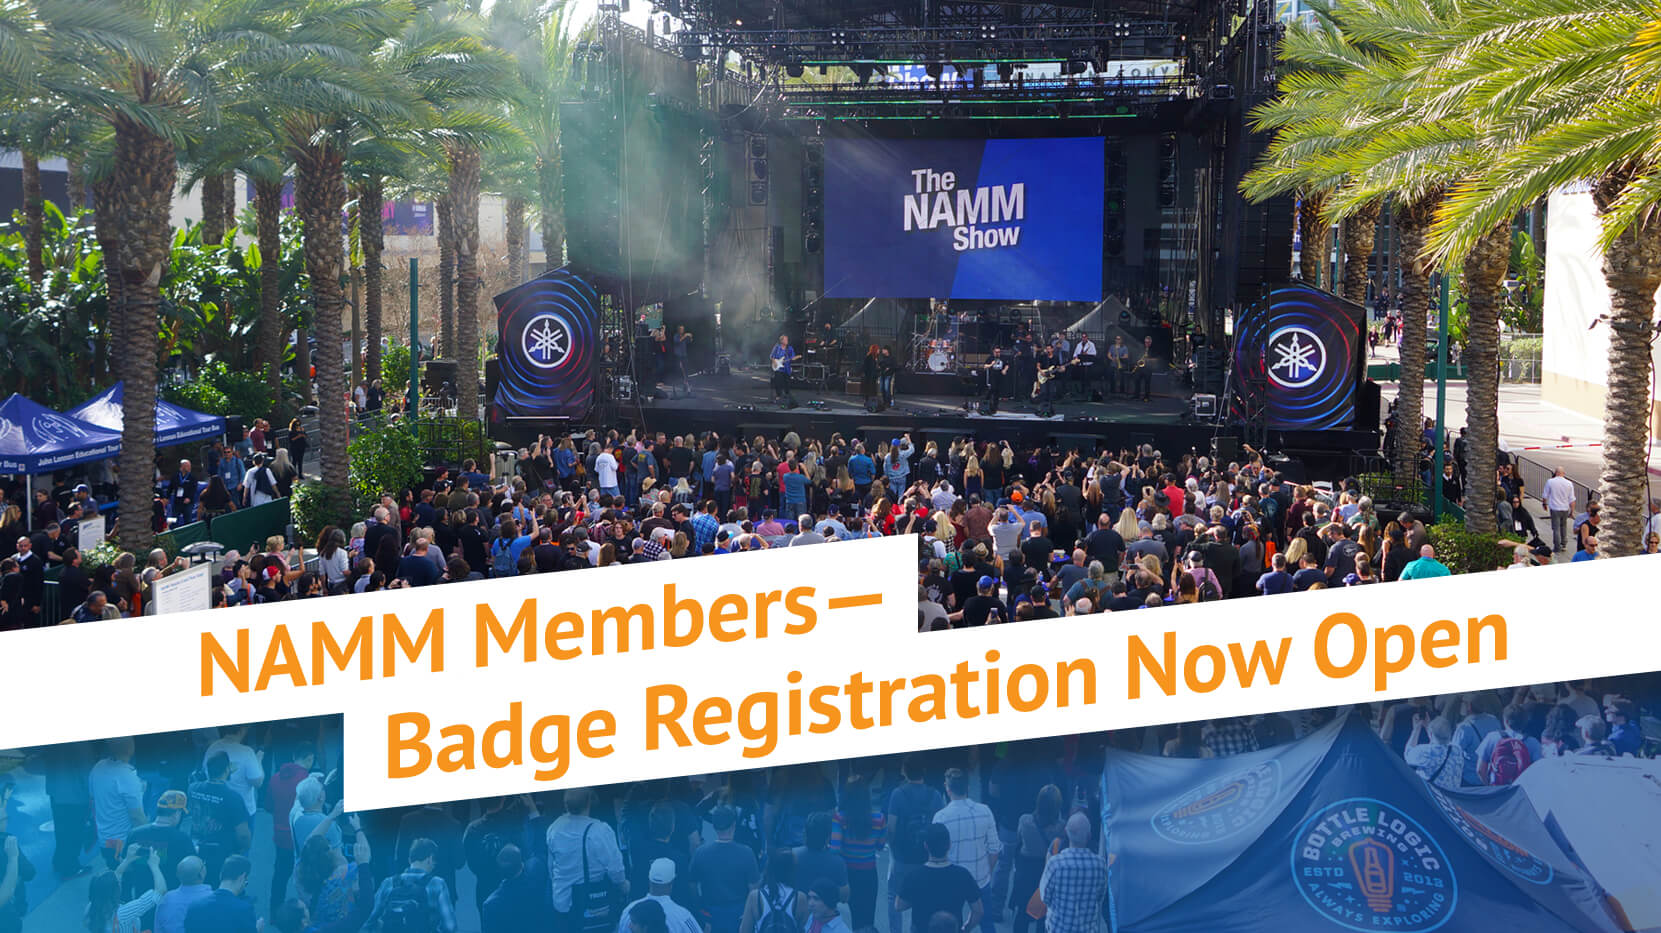 The 2020 NAMM Show badge registration is now open for NAMM Members.